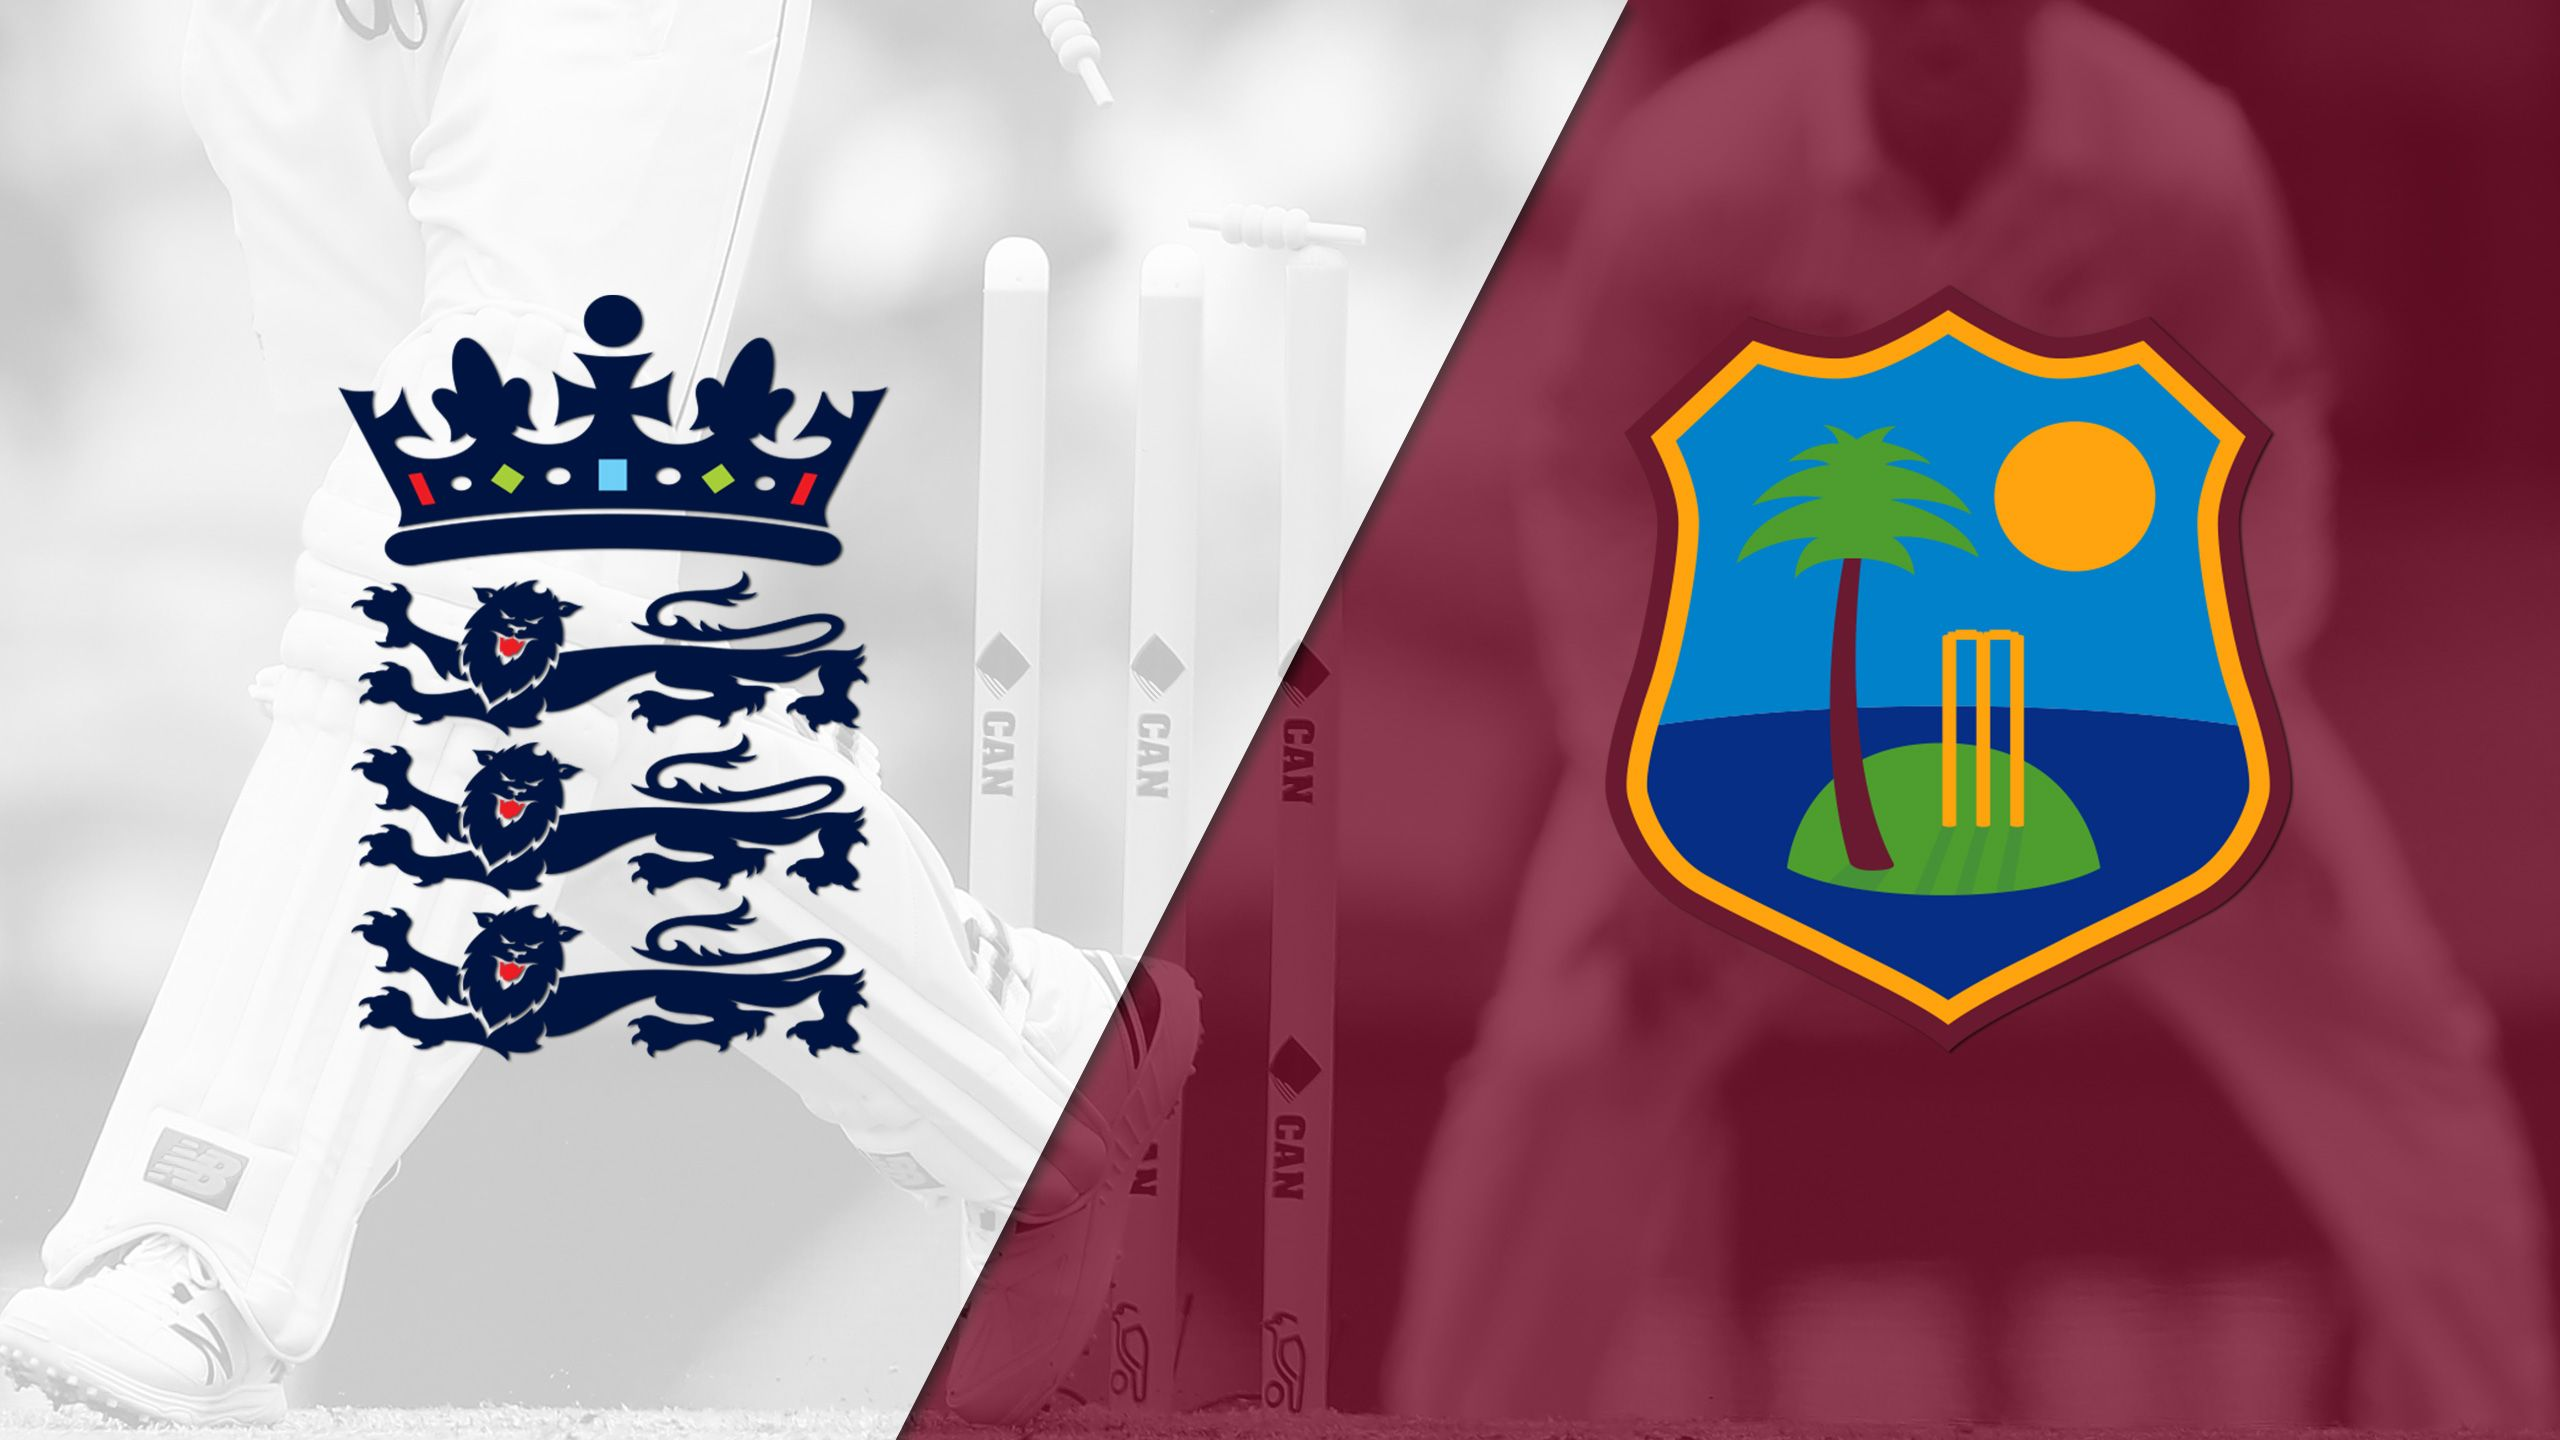 England vs. West Indies (Test 1, Day 3) (International Cricket)